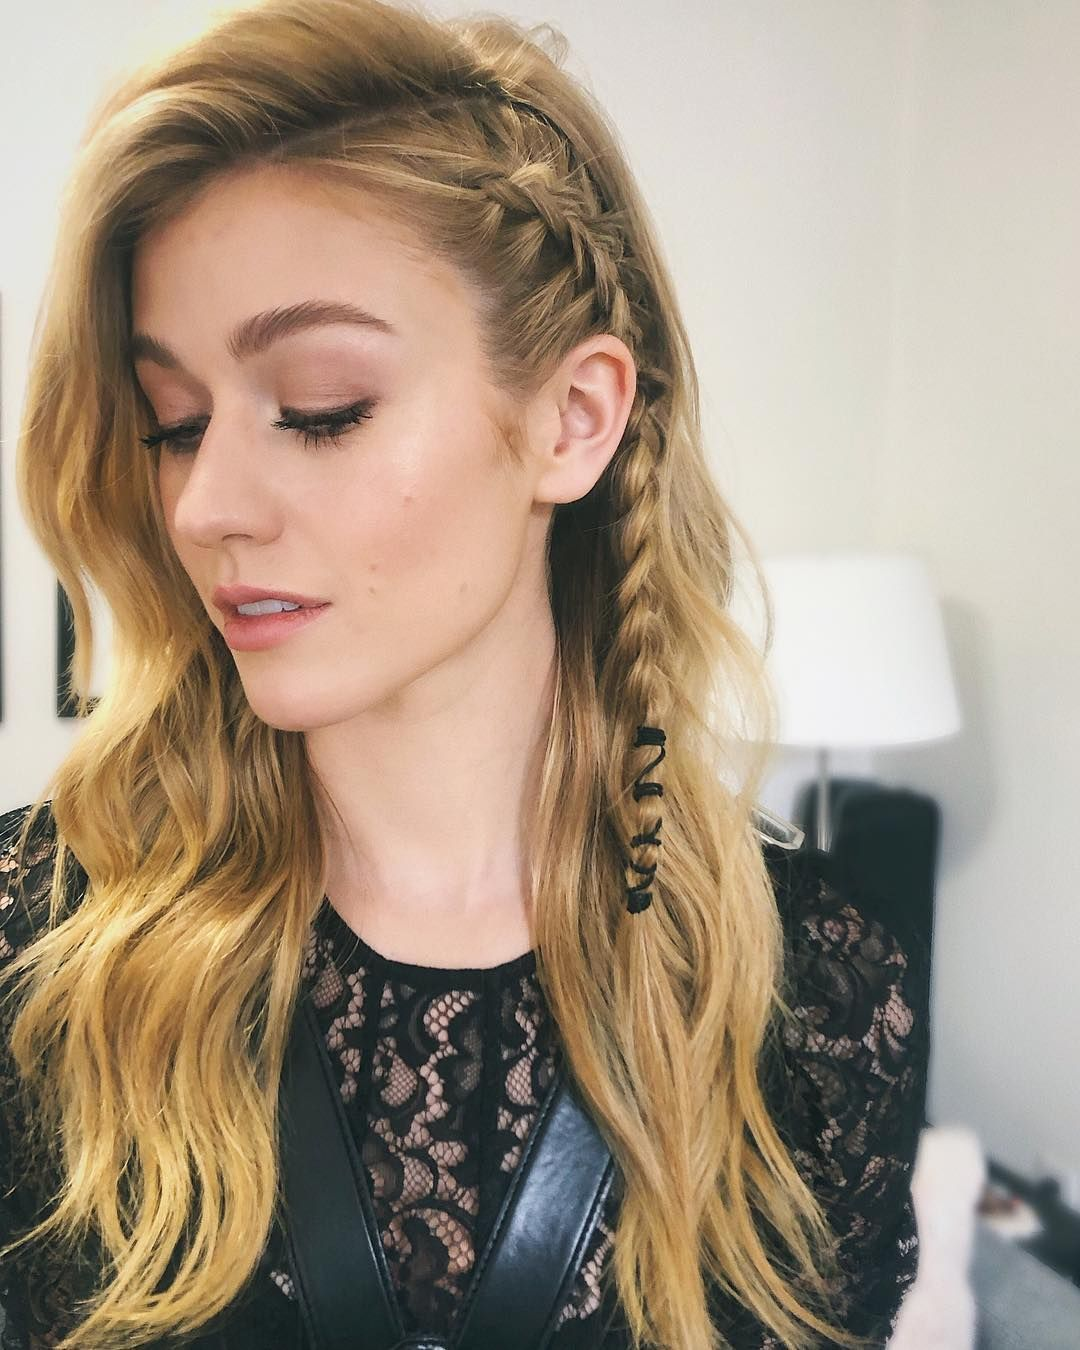 Little Details On Kat Mcnamara Haar Styling Frauen Frisuren Geflochtene Frisuren